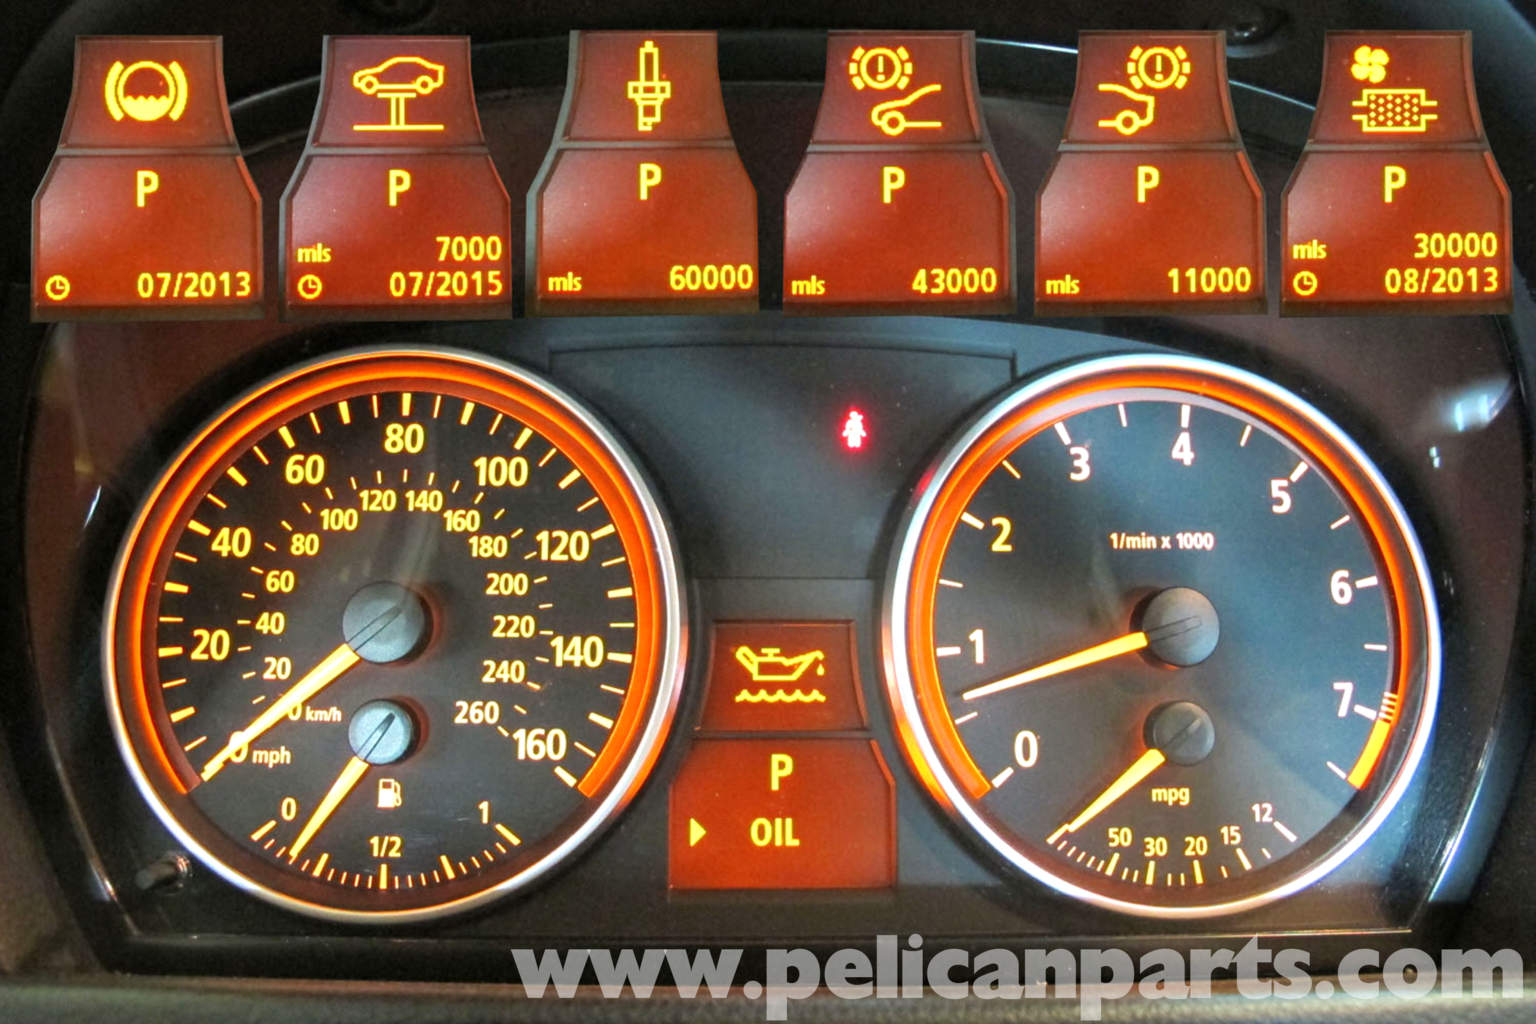 Bmw E90 Condition Based Service Explained E91 E92 E93 Pelican